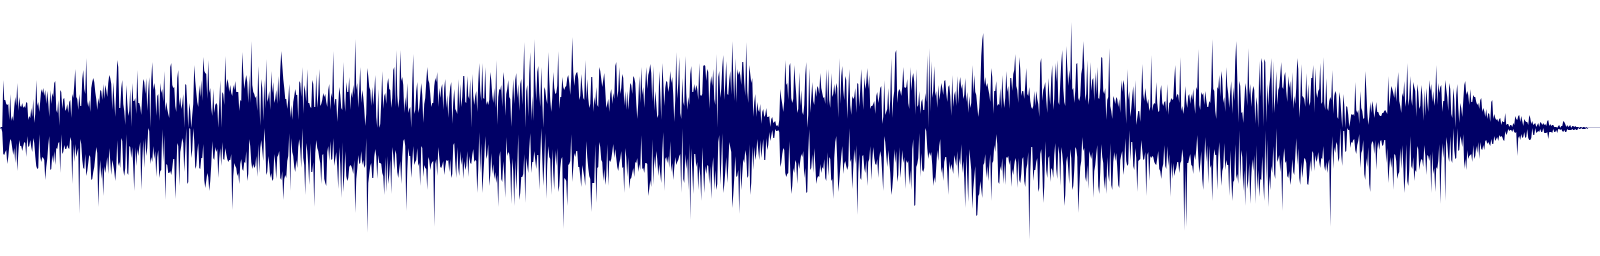 waveform of track #89419